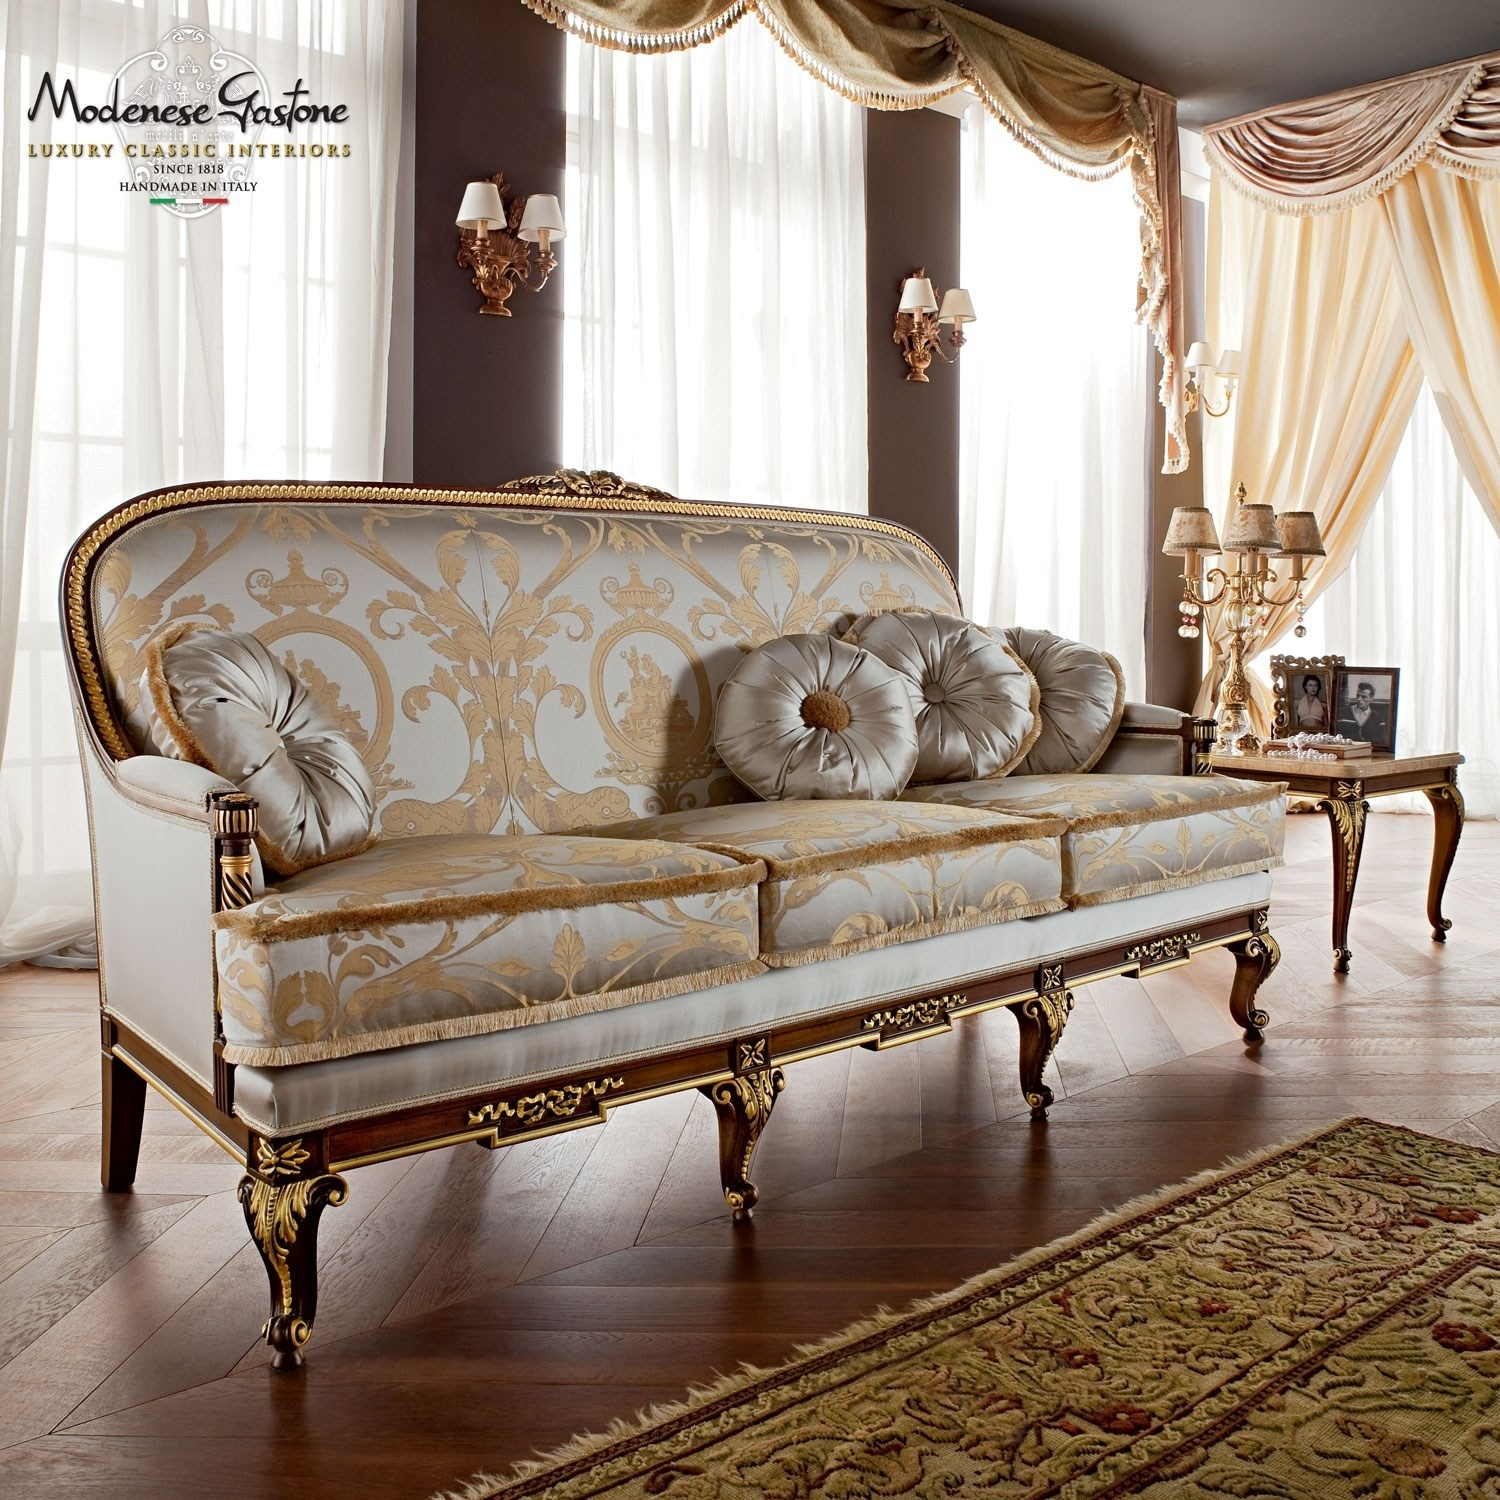 Luxury Classic Design Sofas Collection Upmarket Furniture Luxury intended for Classic Sofas (Image 7 of 10)